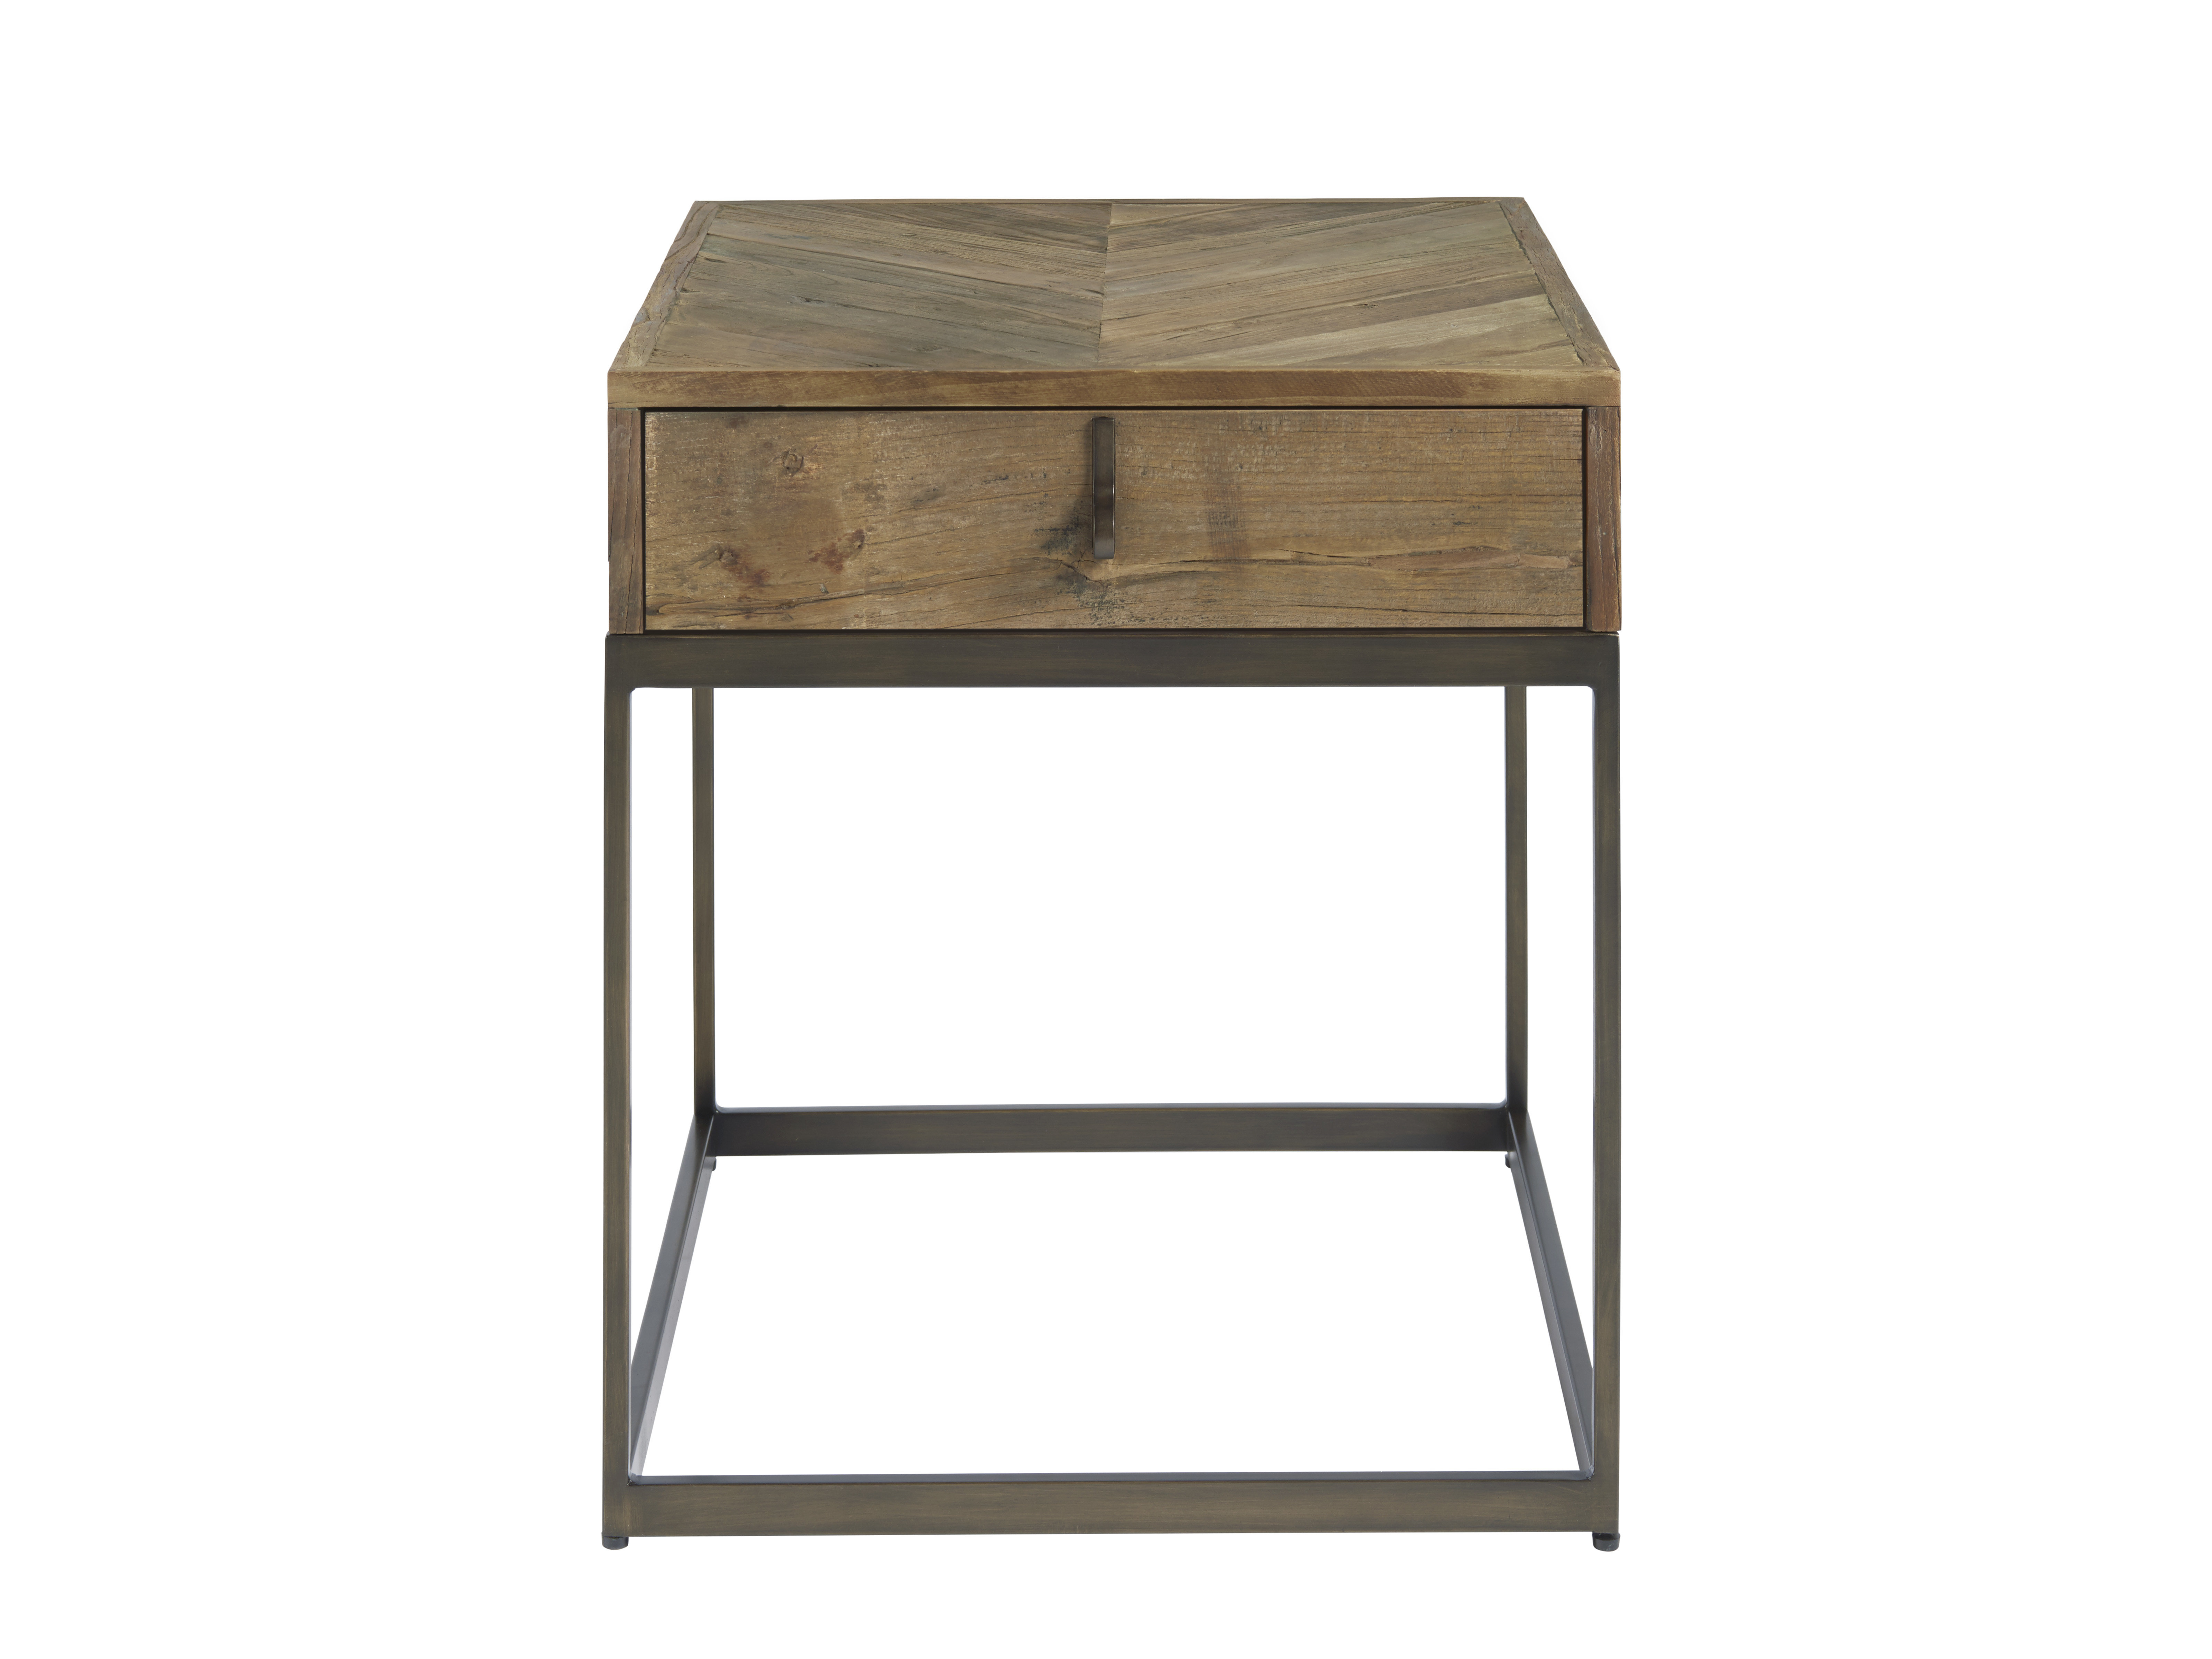 foundry select duryea end table room essentials trestle accent contemporary dining small marble concrete look bistro and chairs inch console funky floor lamps tiny side with one